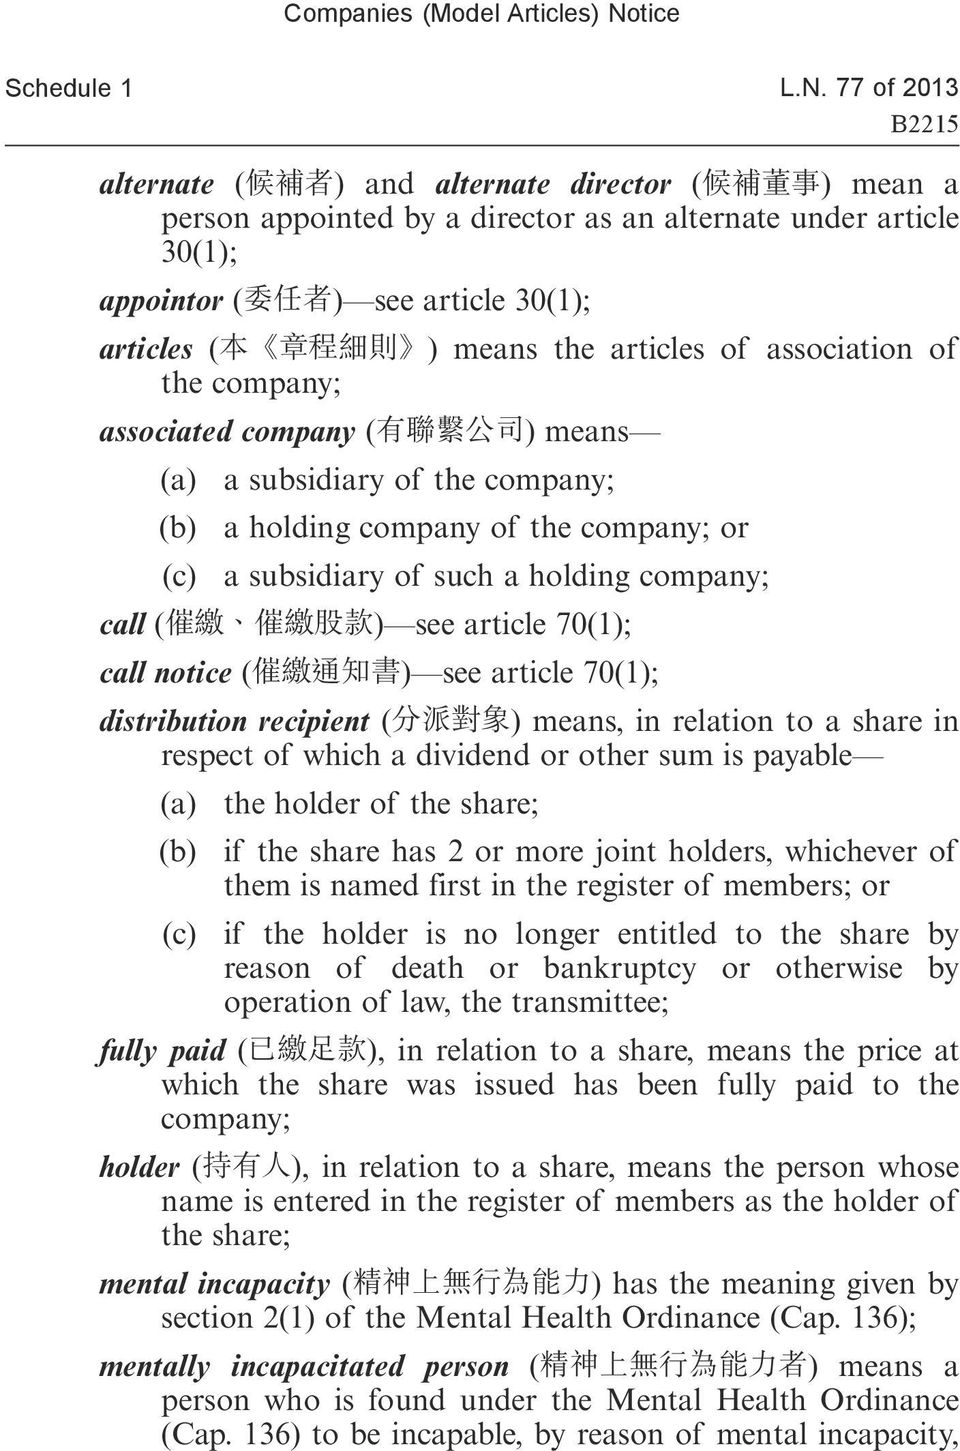 70(1); call notice ( ) see article 70(1); distribution recipient ( ) means, in relation to a share in respect of which a dividend or other sum is payable (a) the holder of the share; (b) if the share